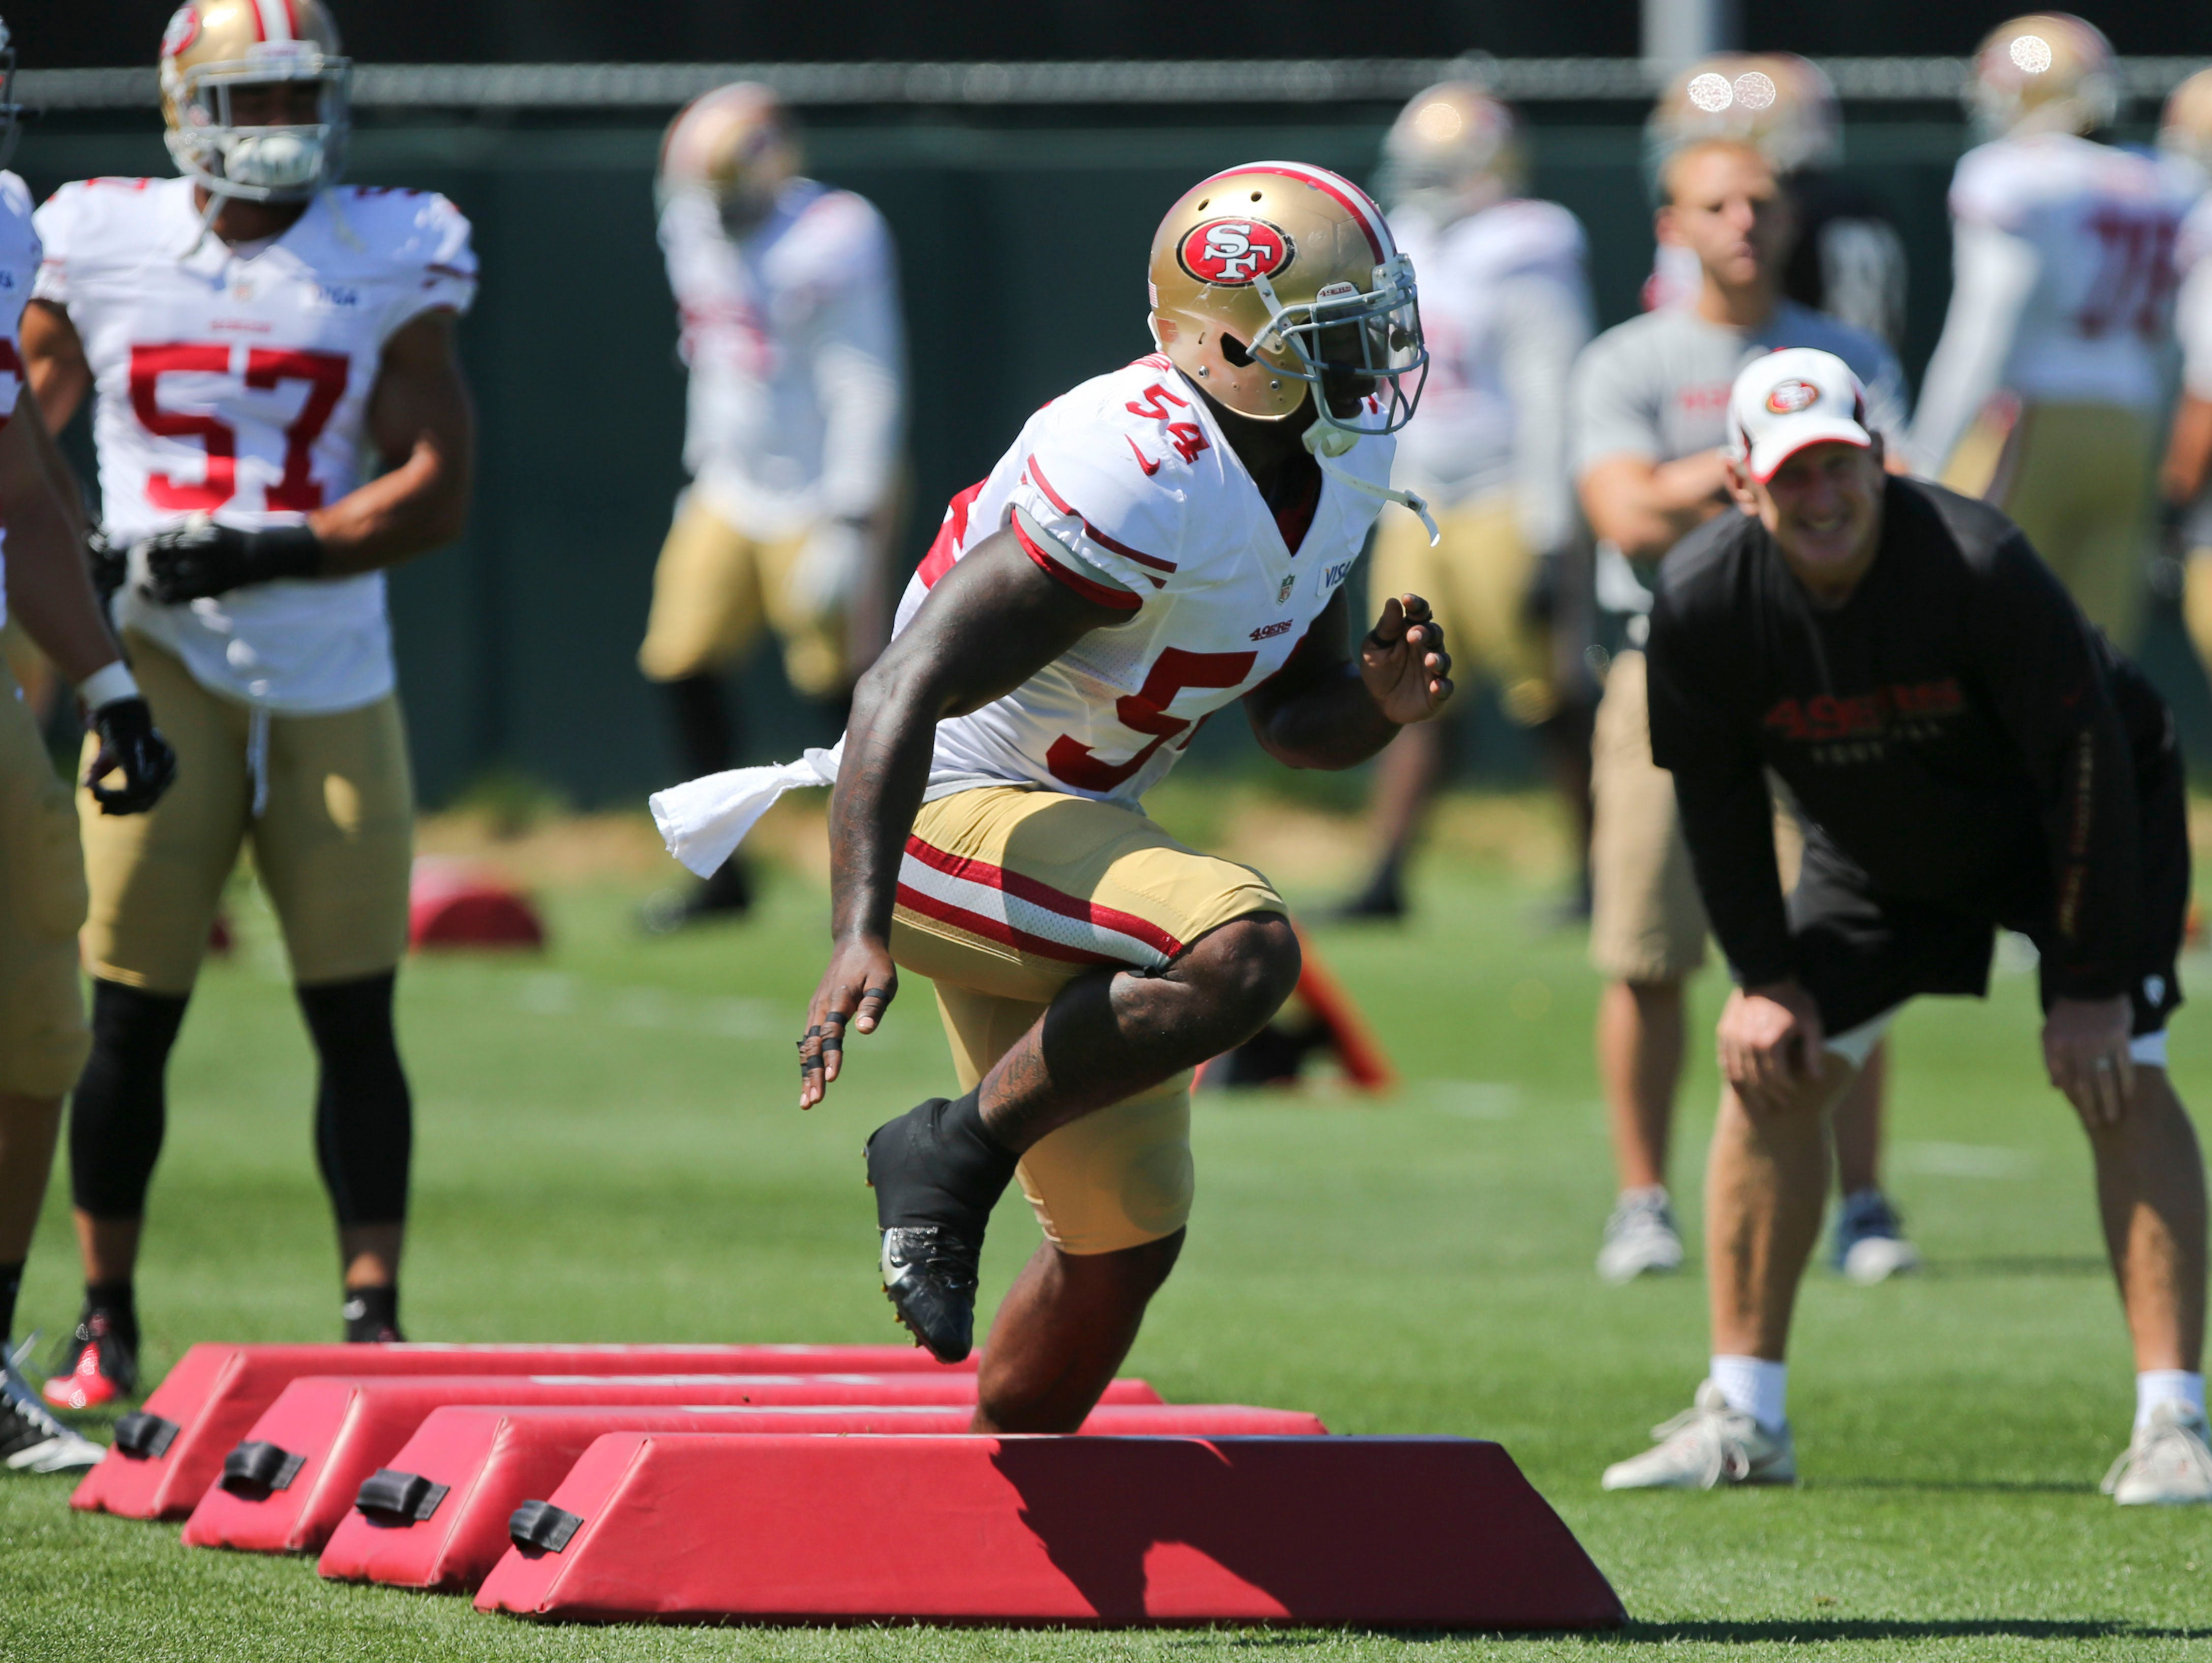 San Francisco 49ers outside linebacker Nick Moody (54) runs drills during 49ers training camp at the 49ers practice facility.